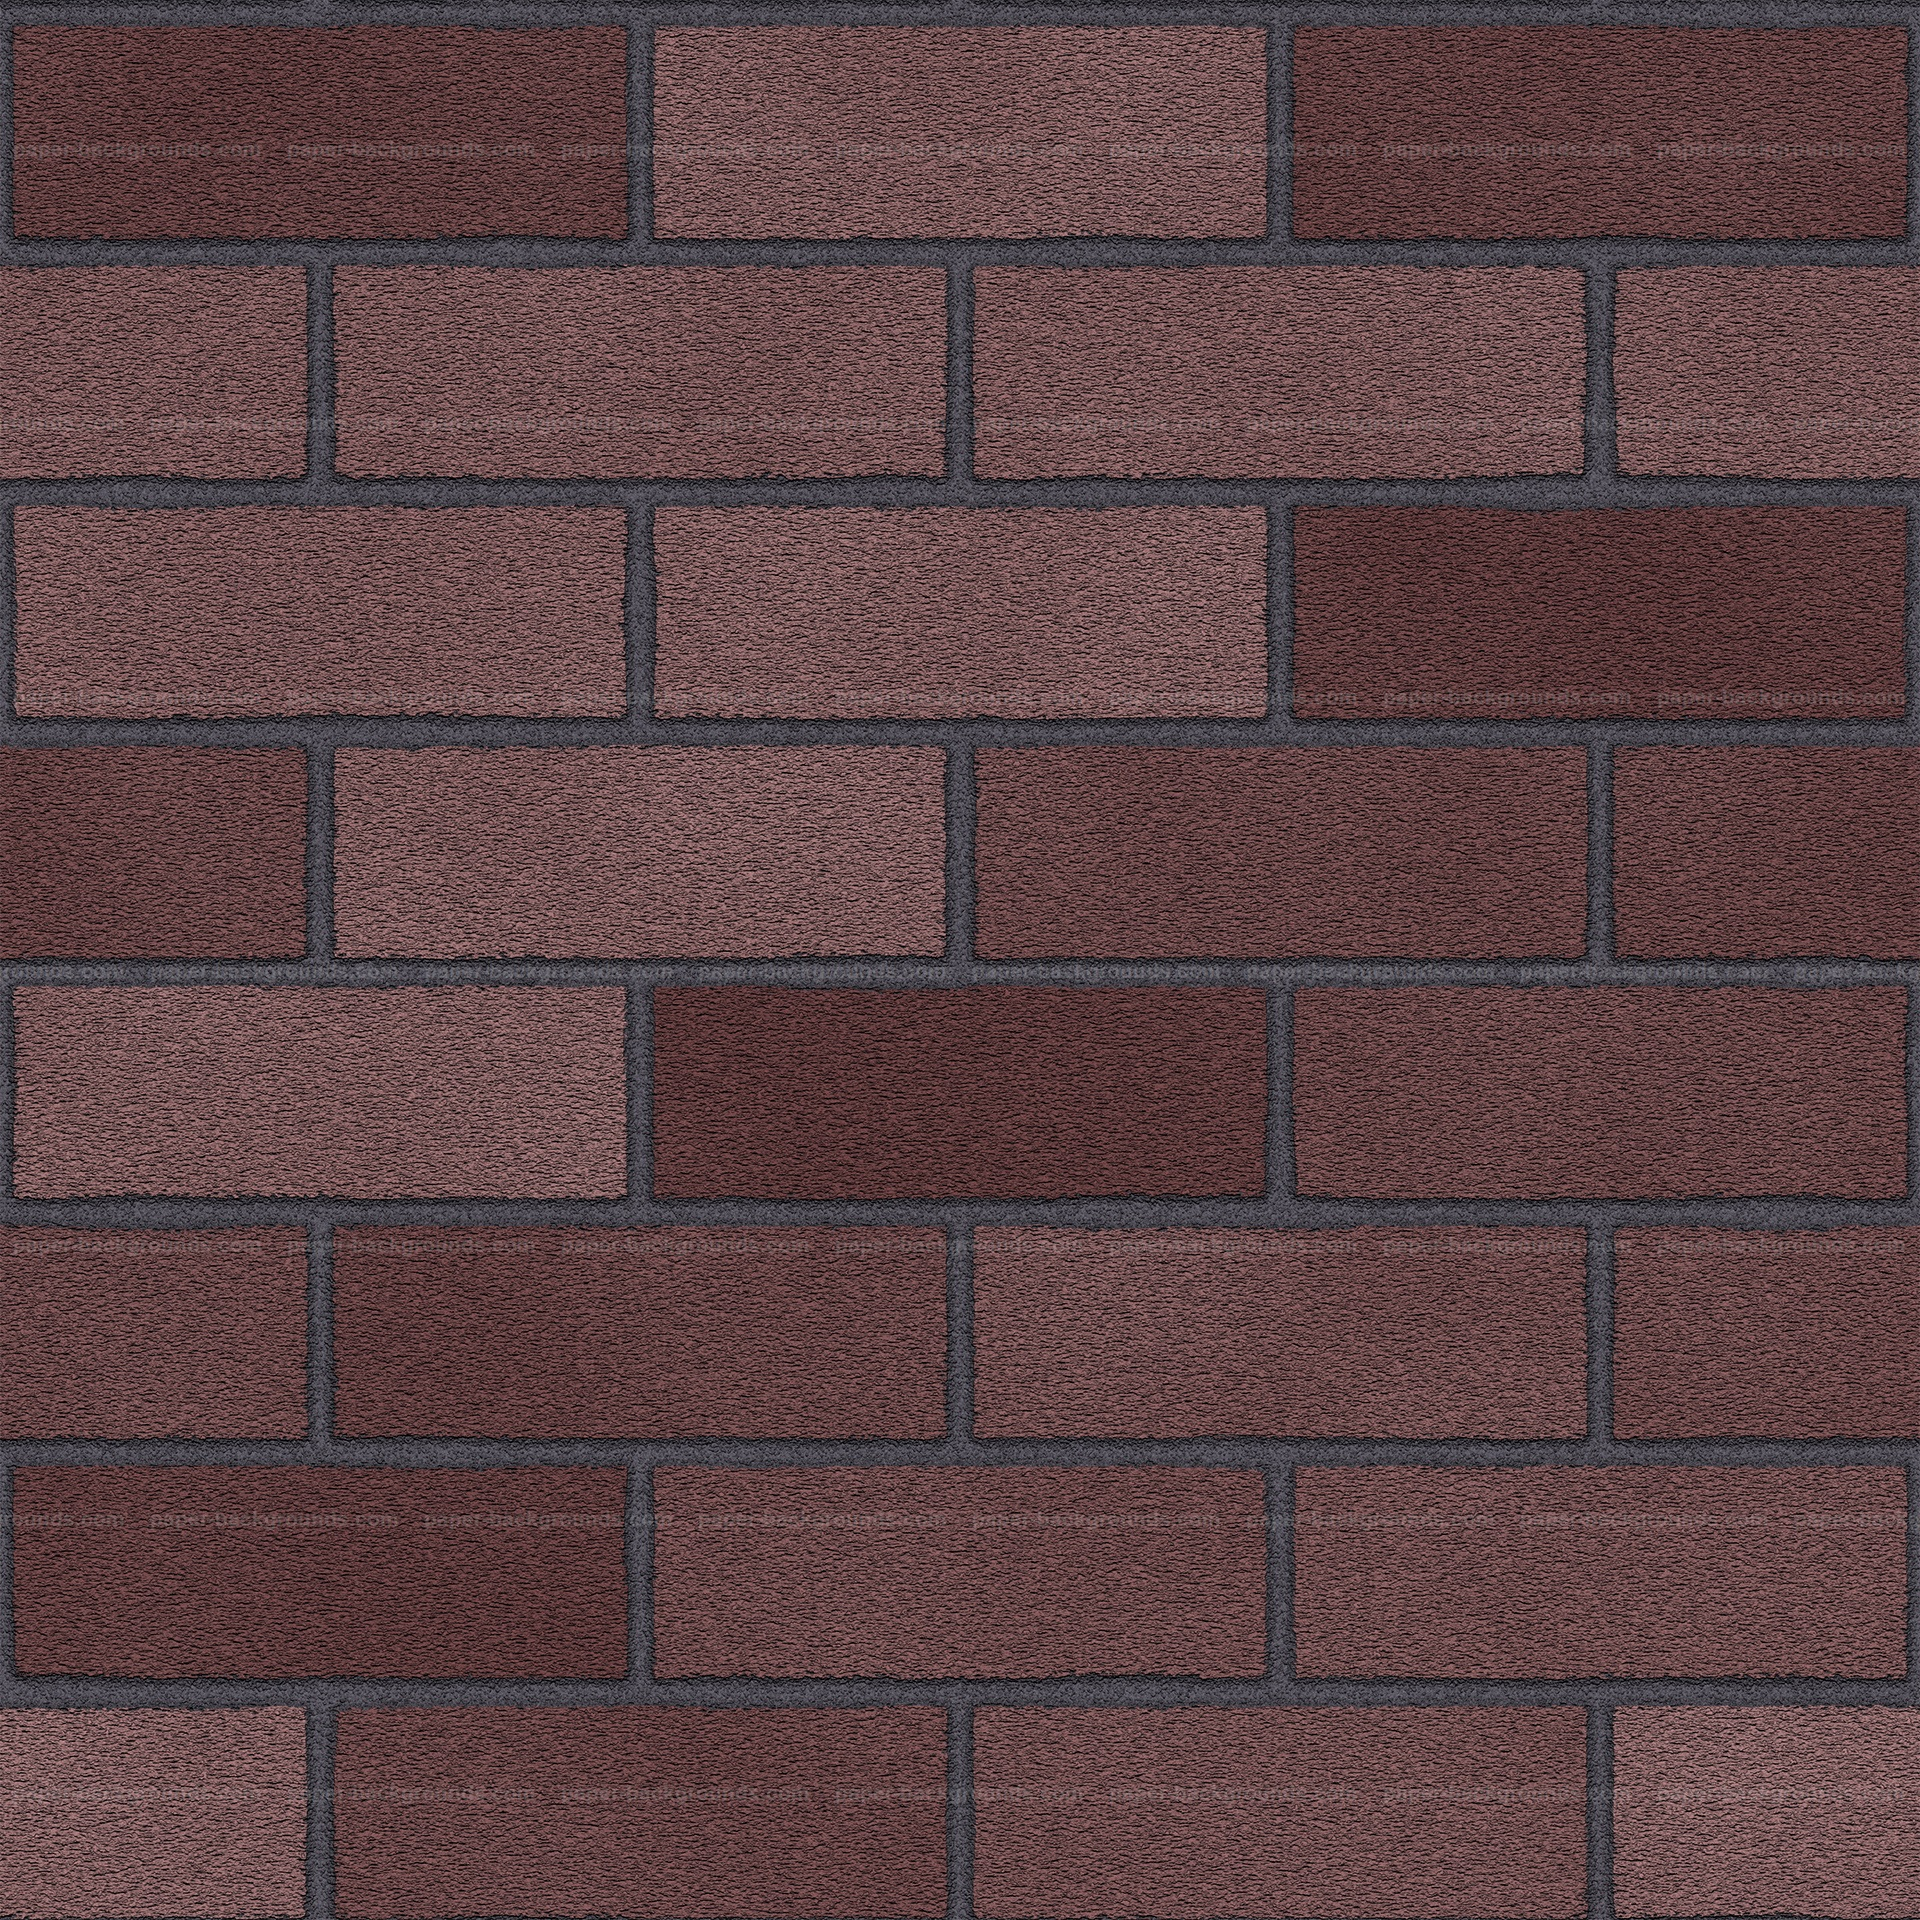 Seamless Plum Brick Wall Texture Background HD